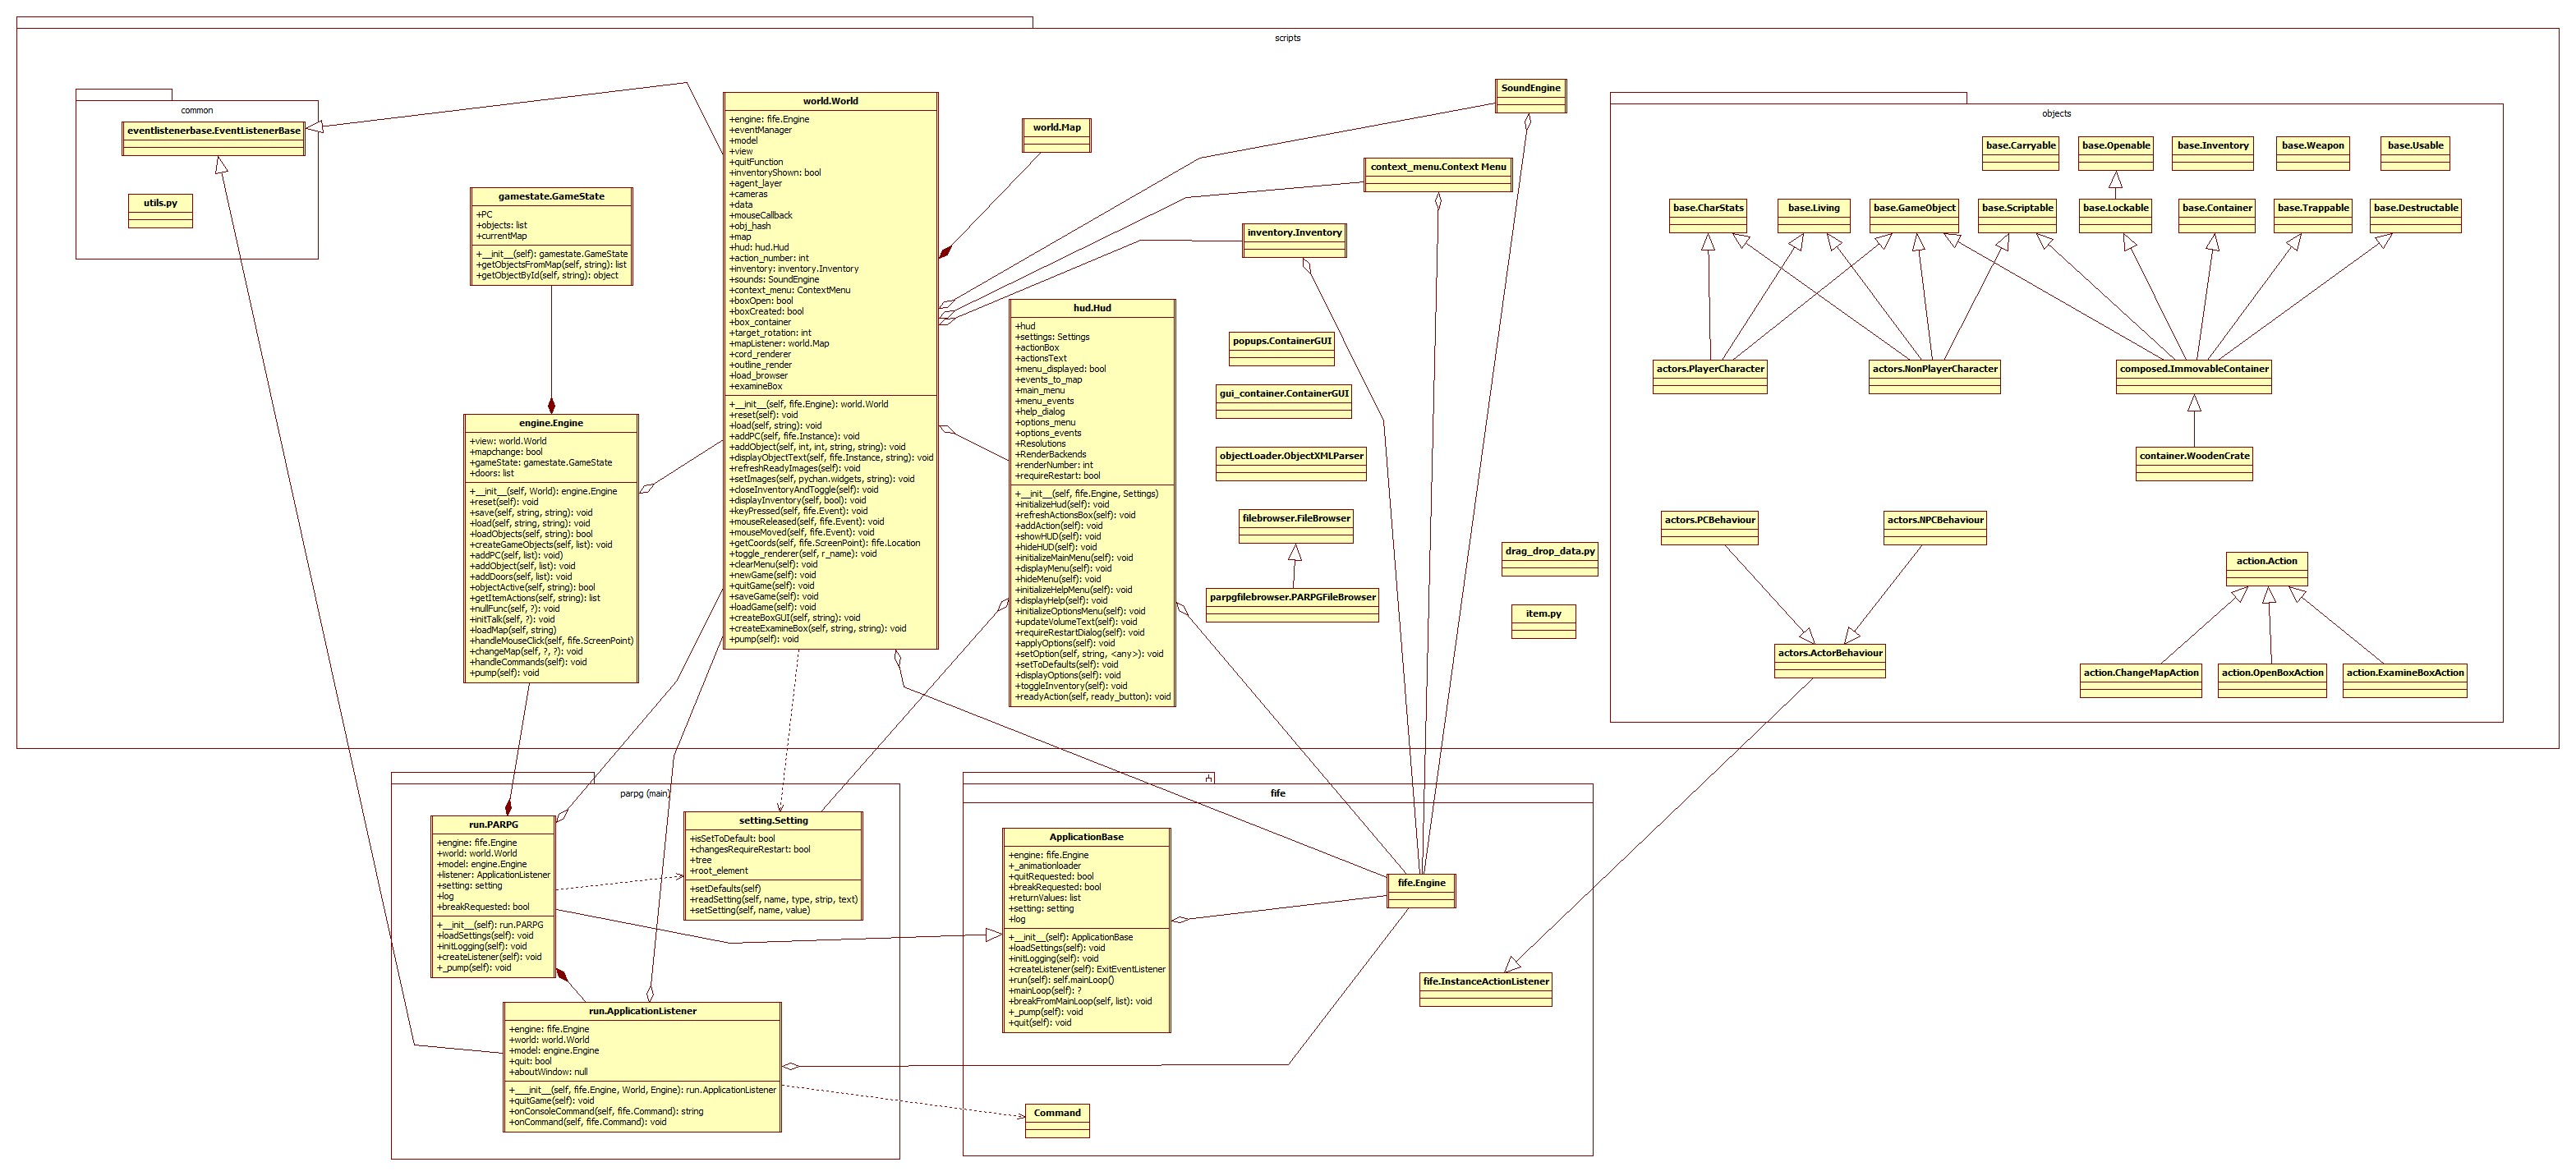 Uml class design post apocalyptic rpg wiki parpg class diagram rev 232g ccuart Image collections